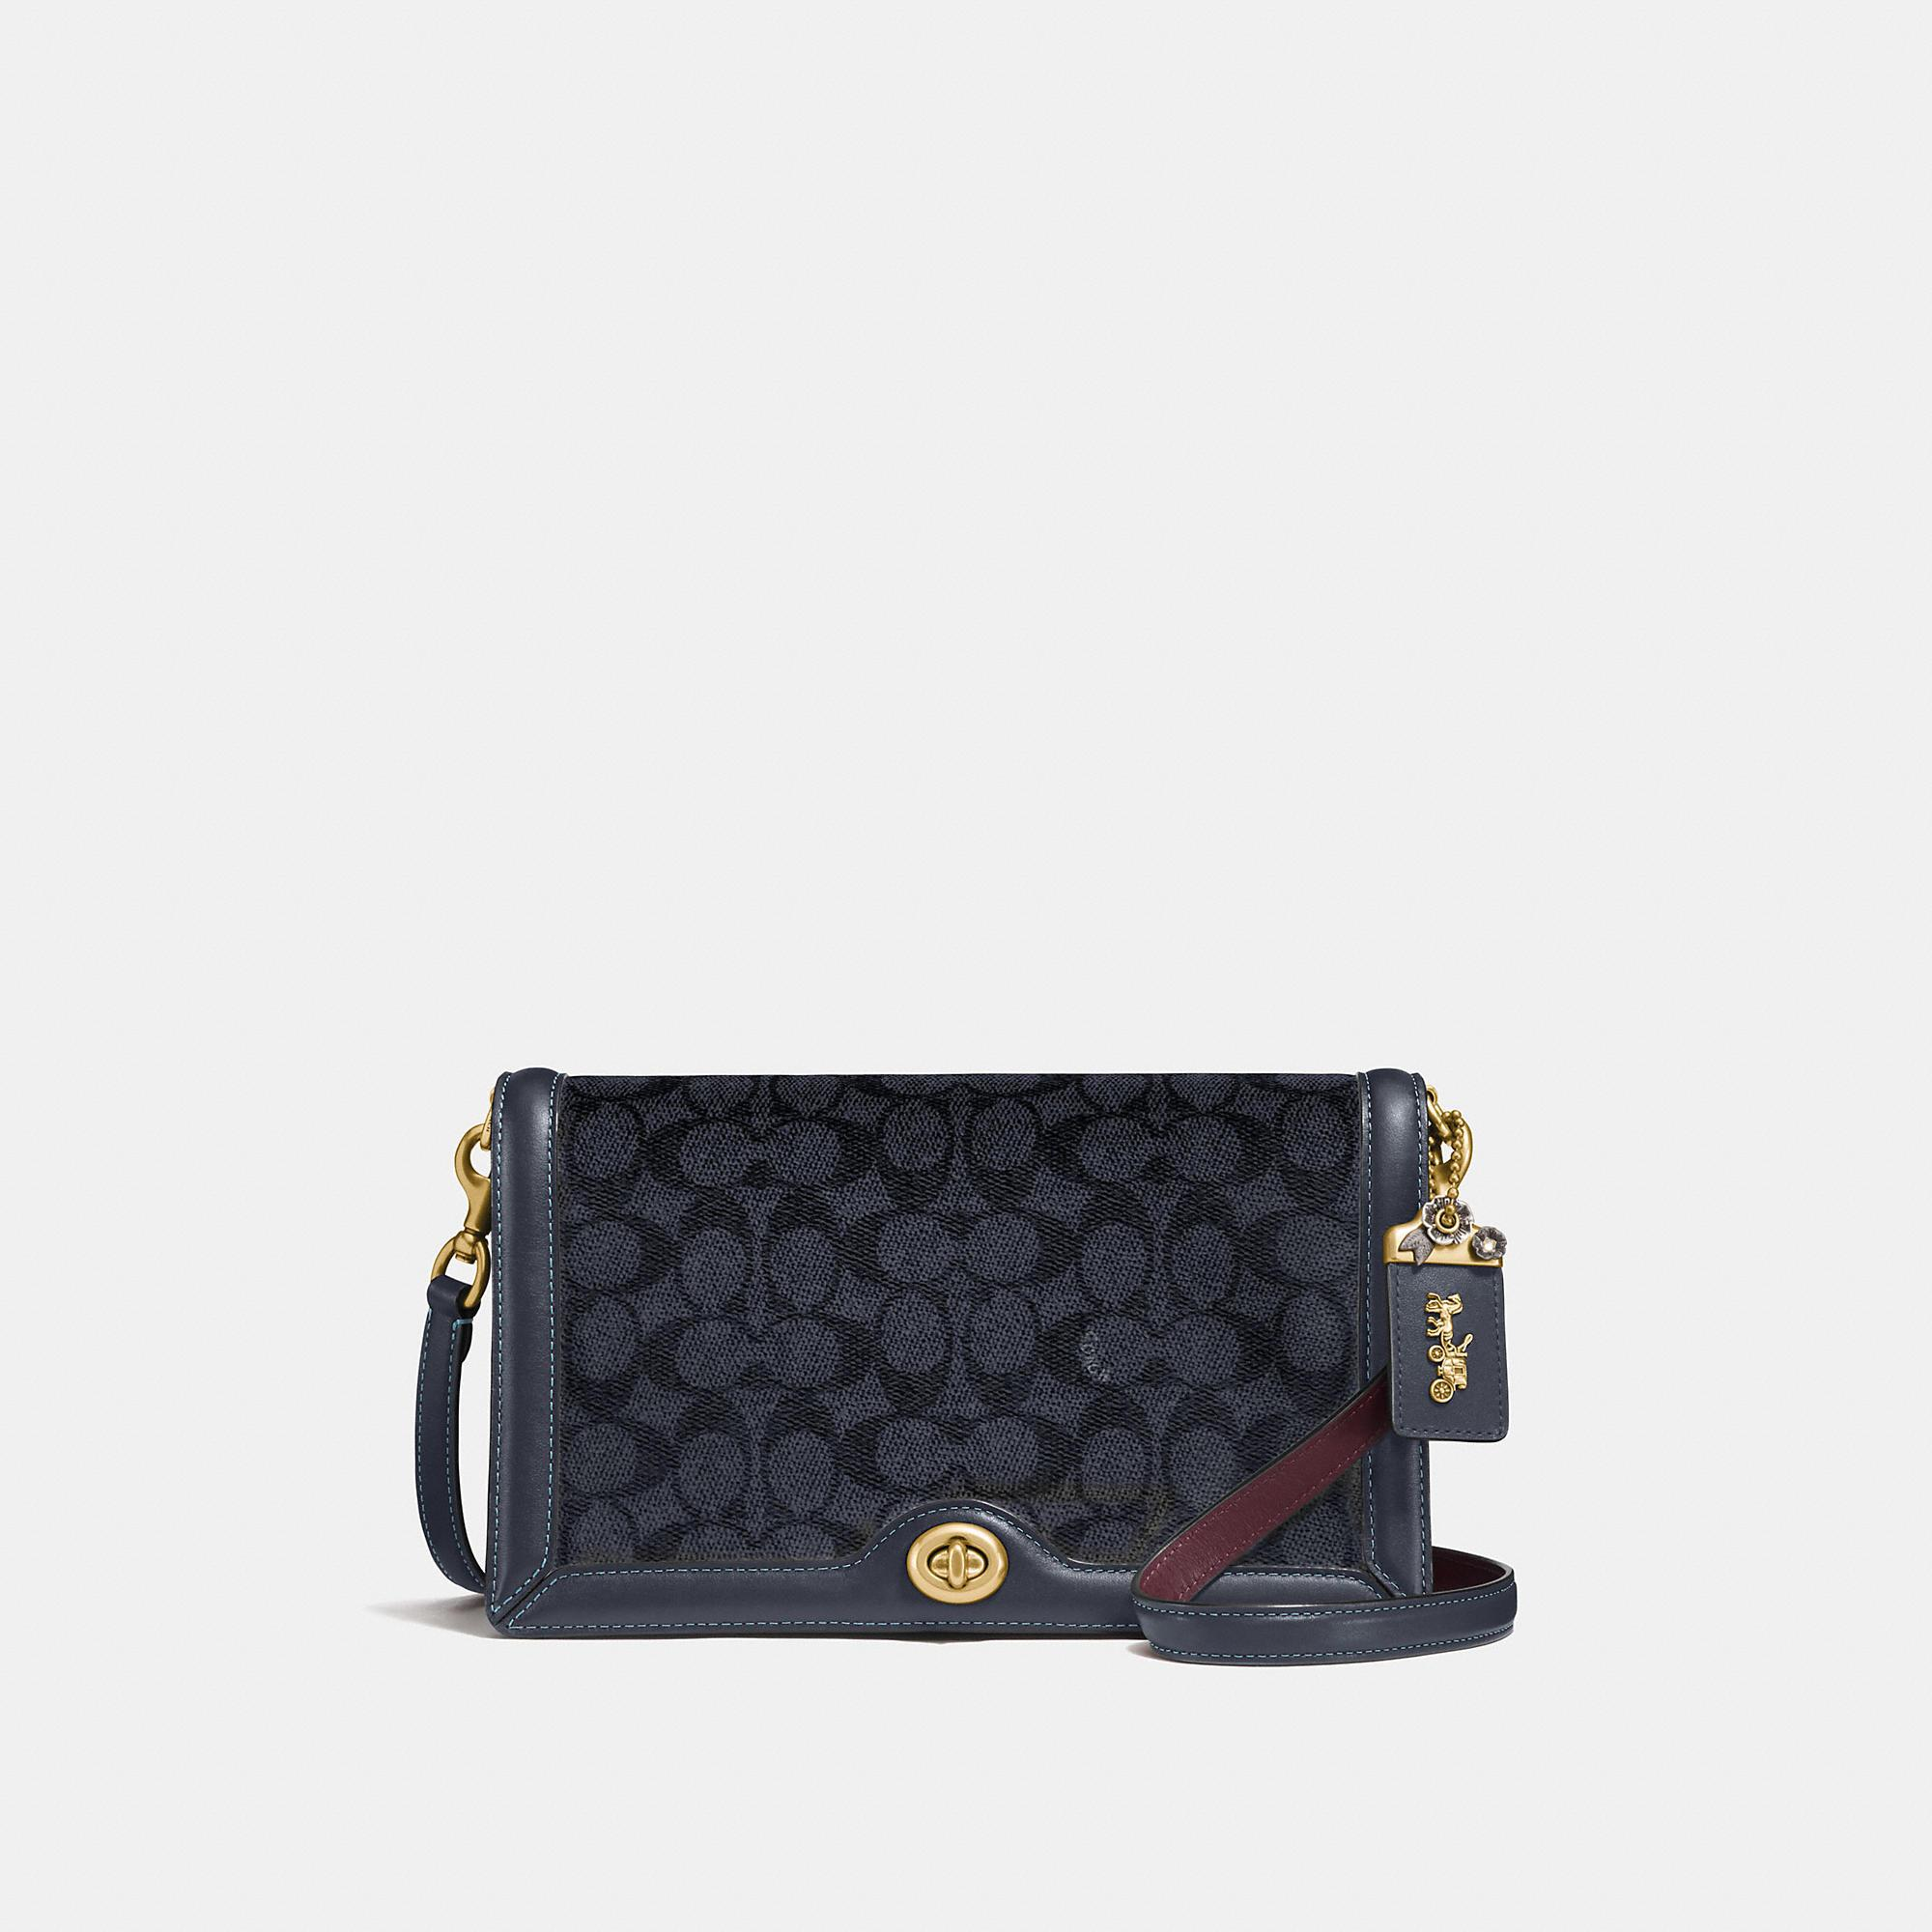 82c8c089e0fb0d Coach Riley In Signature Canvas In Charcoal/Midnight Navy/Brass ...